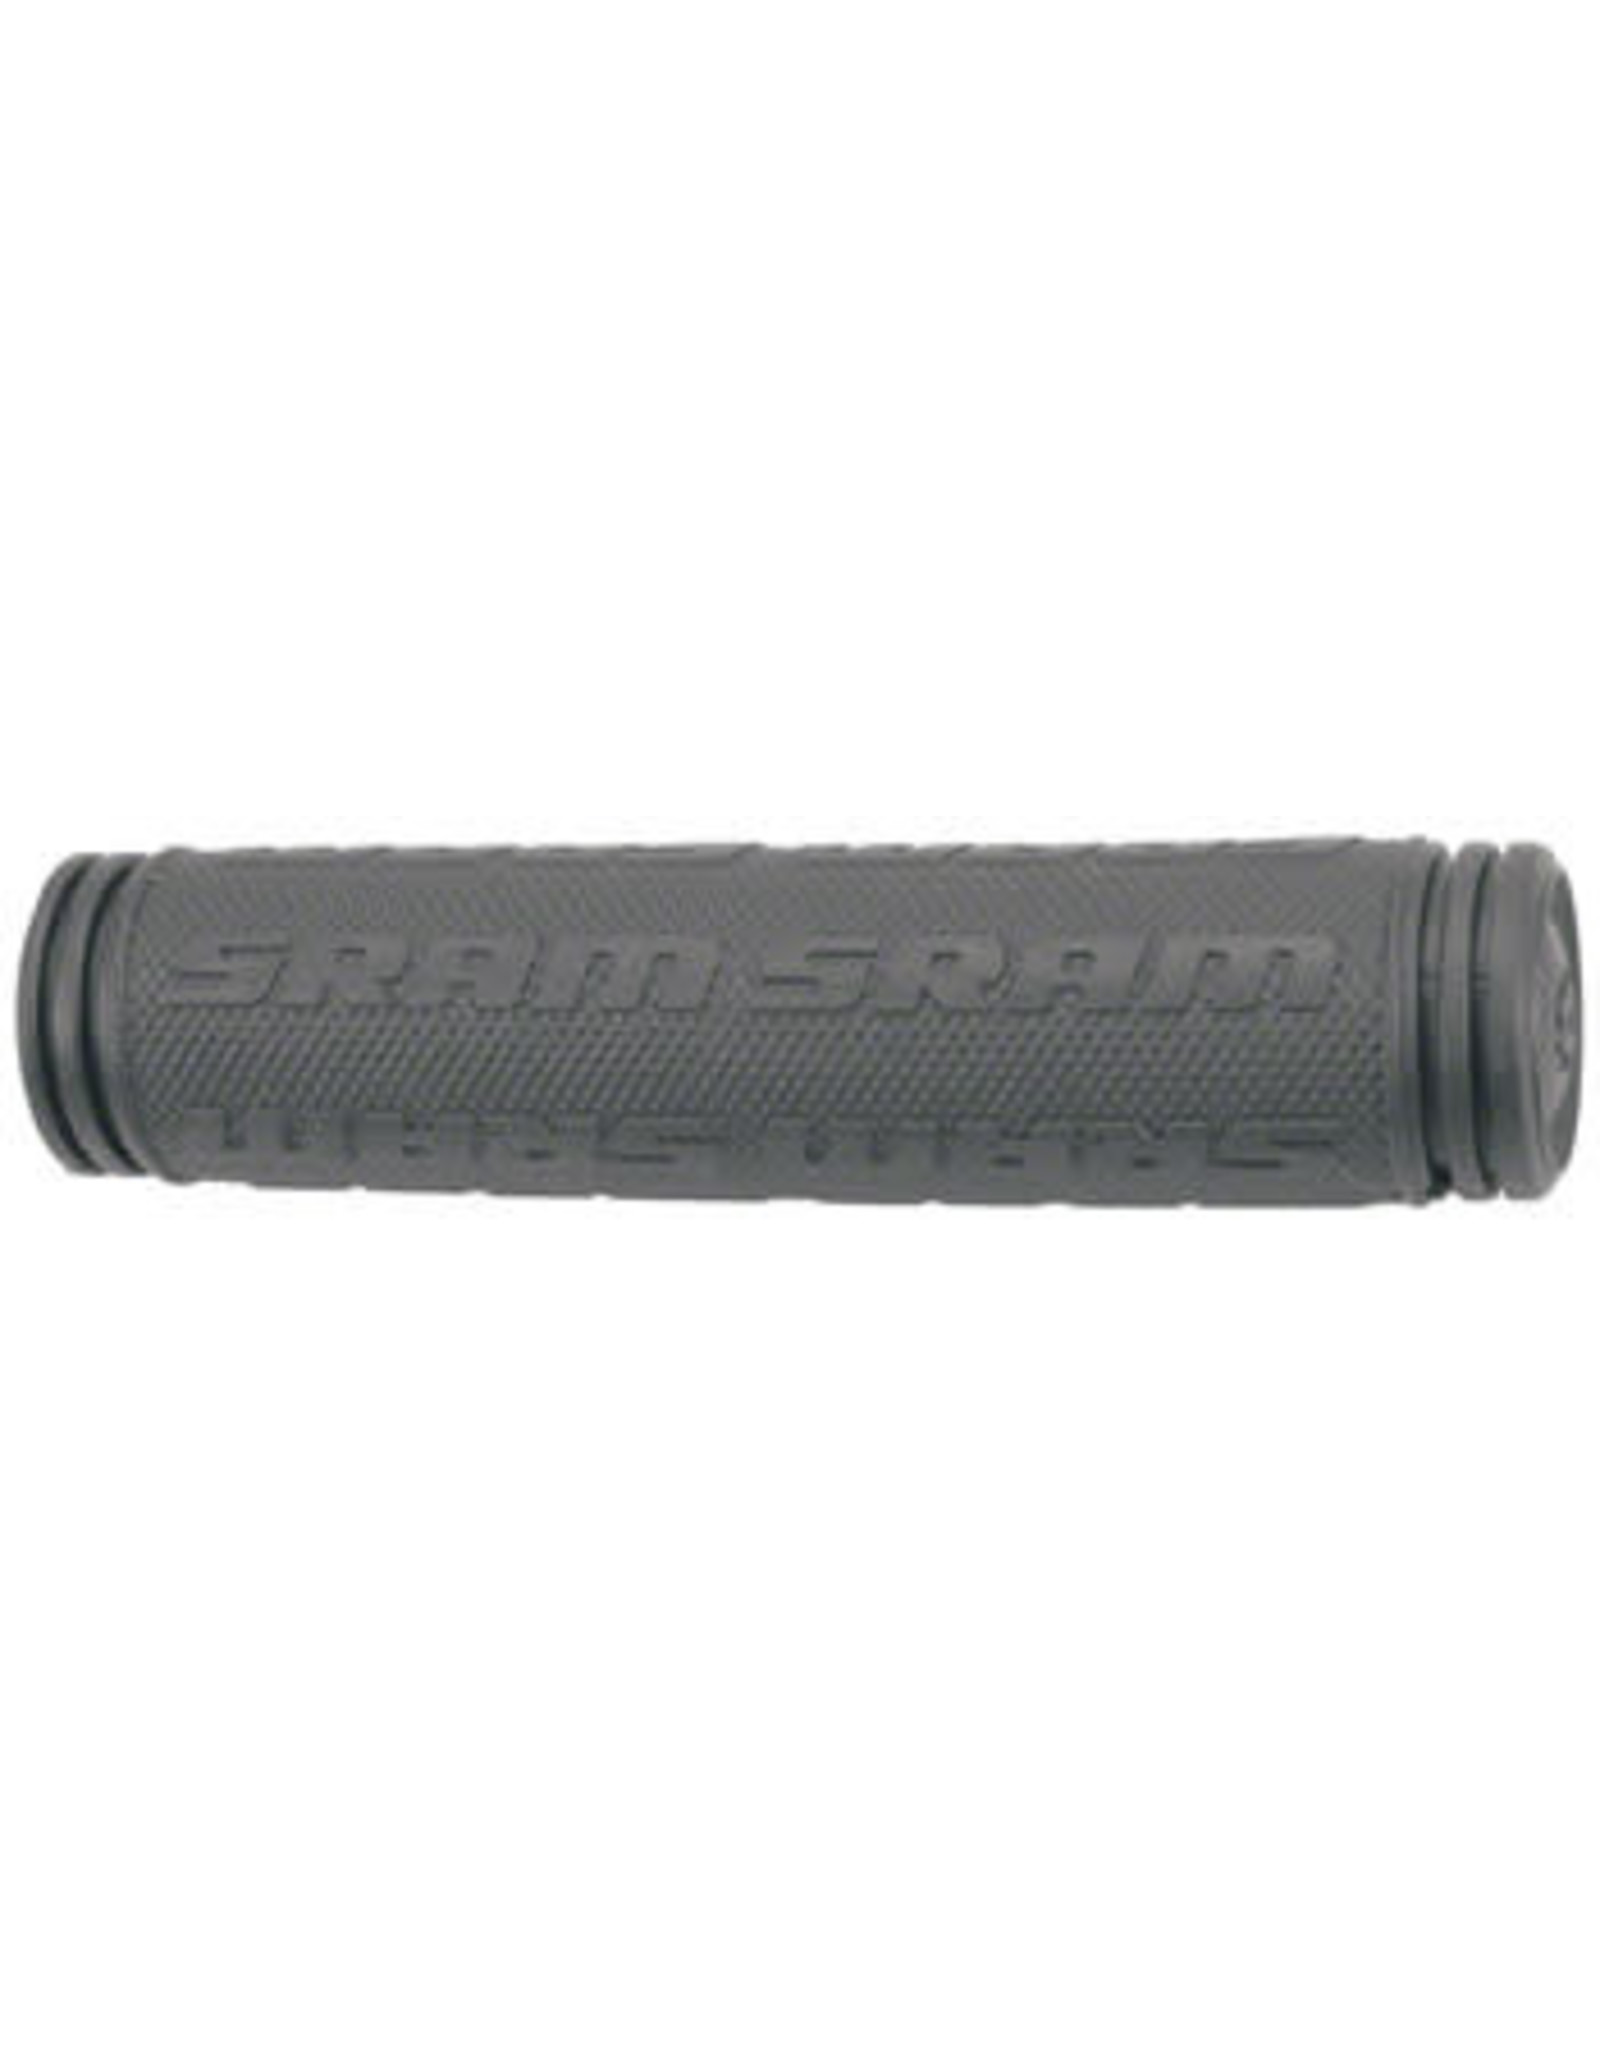 SRAM SRAM Stationary Grips: Black